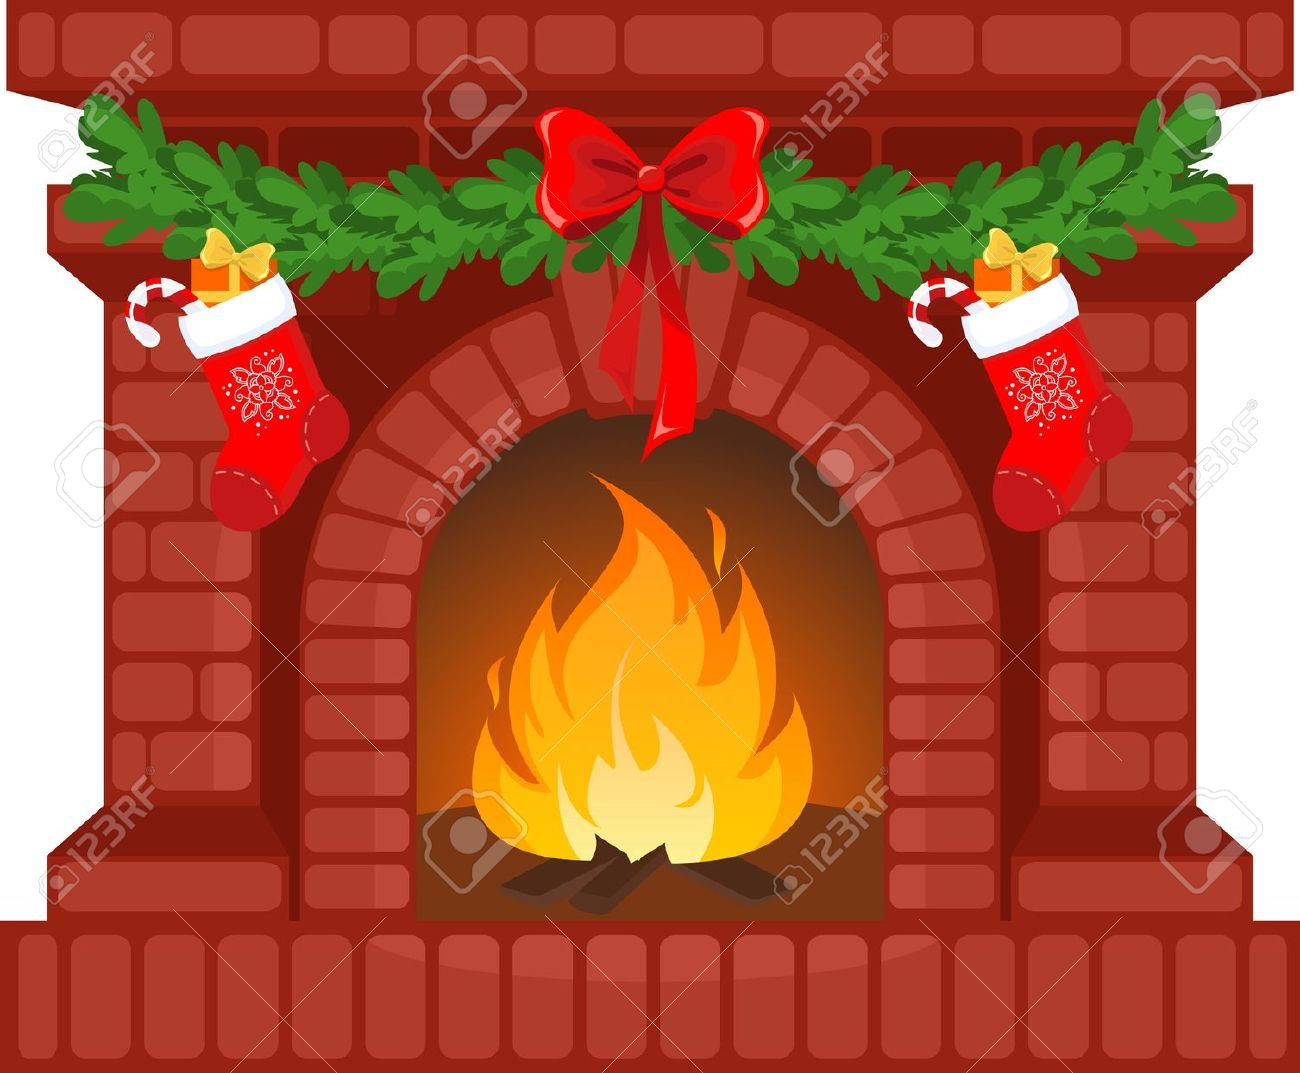 Santa sitting by a campfire clipart download Free Santa Fireplace Cliparts, Download Free Clip Art, Free ... download